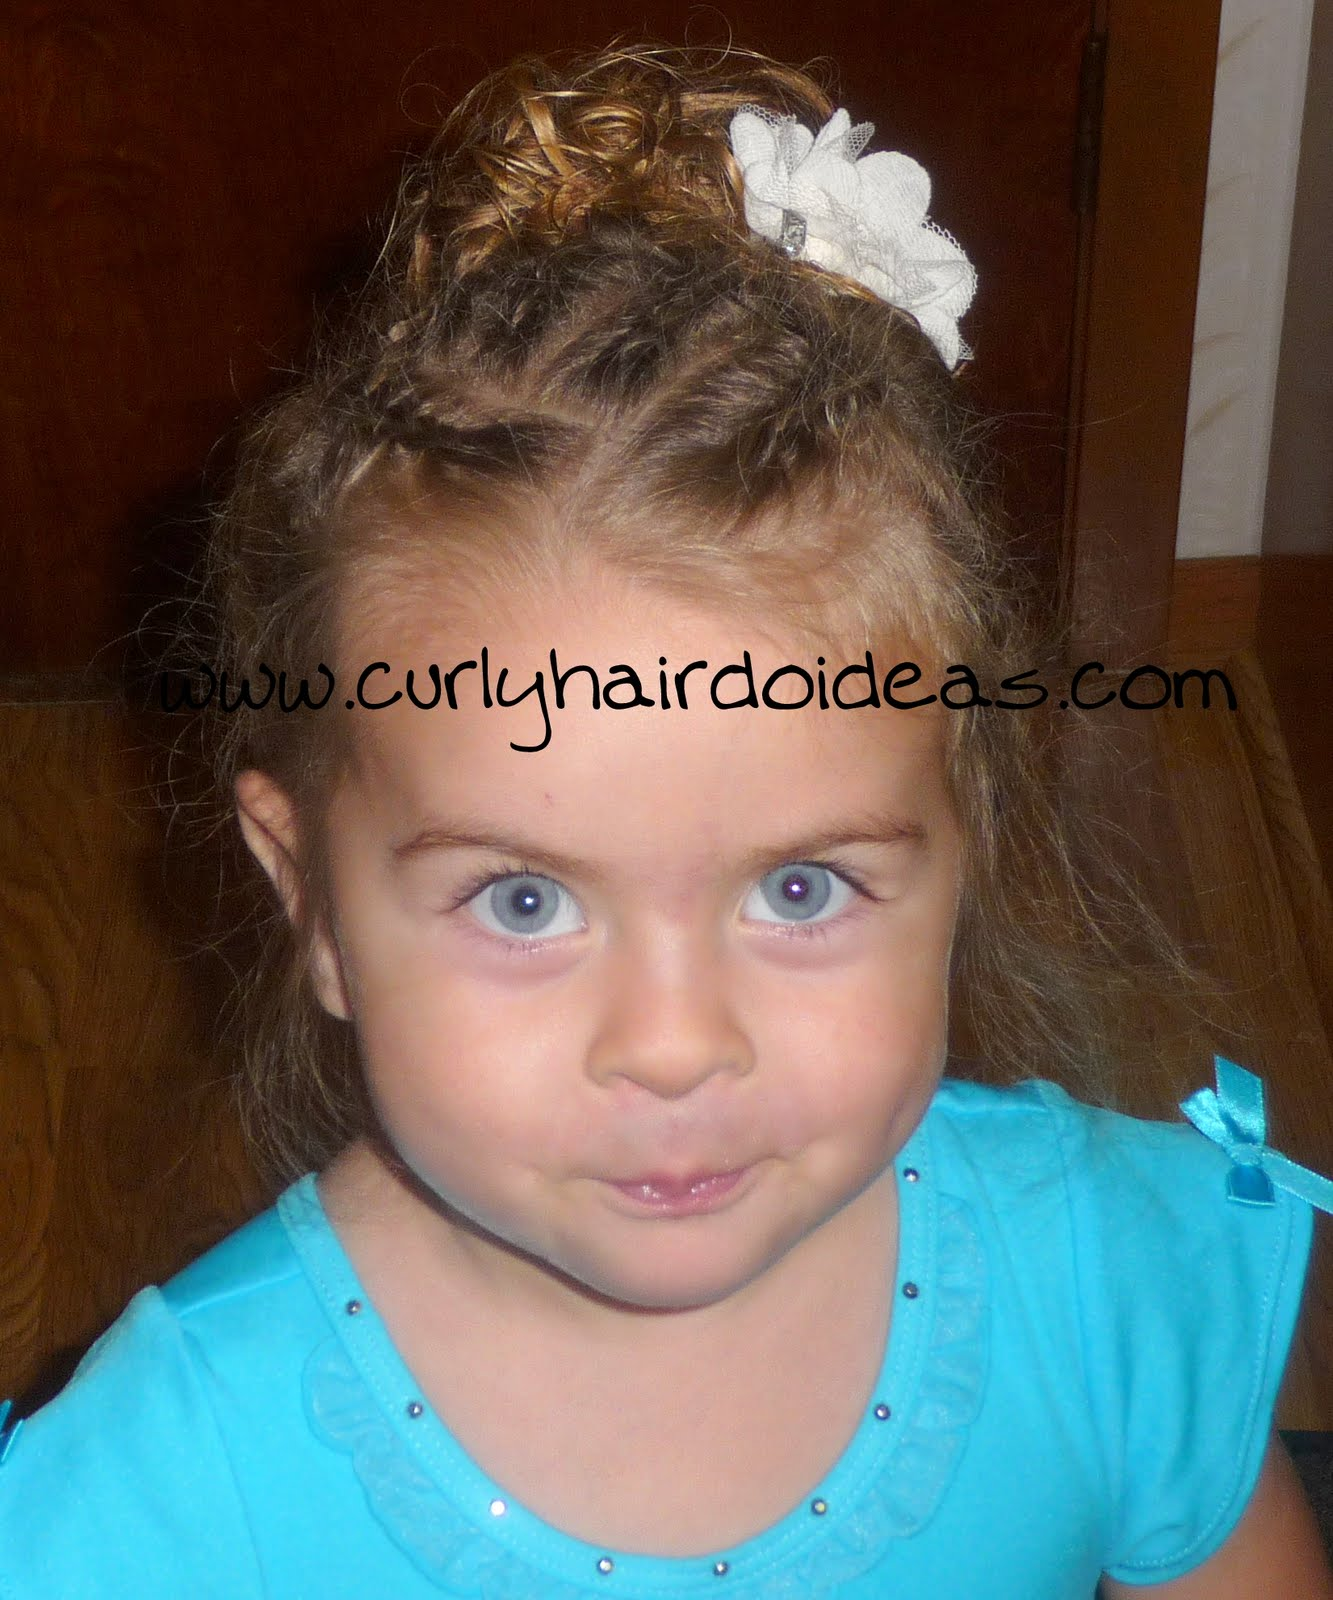 Awesome Curly Hairdo Ideas Toddler Hairstyle For Dance Class Hairstyle Inspiration Daily Dogsangcom